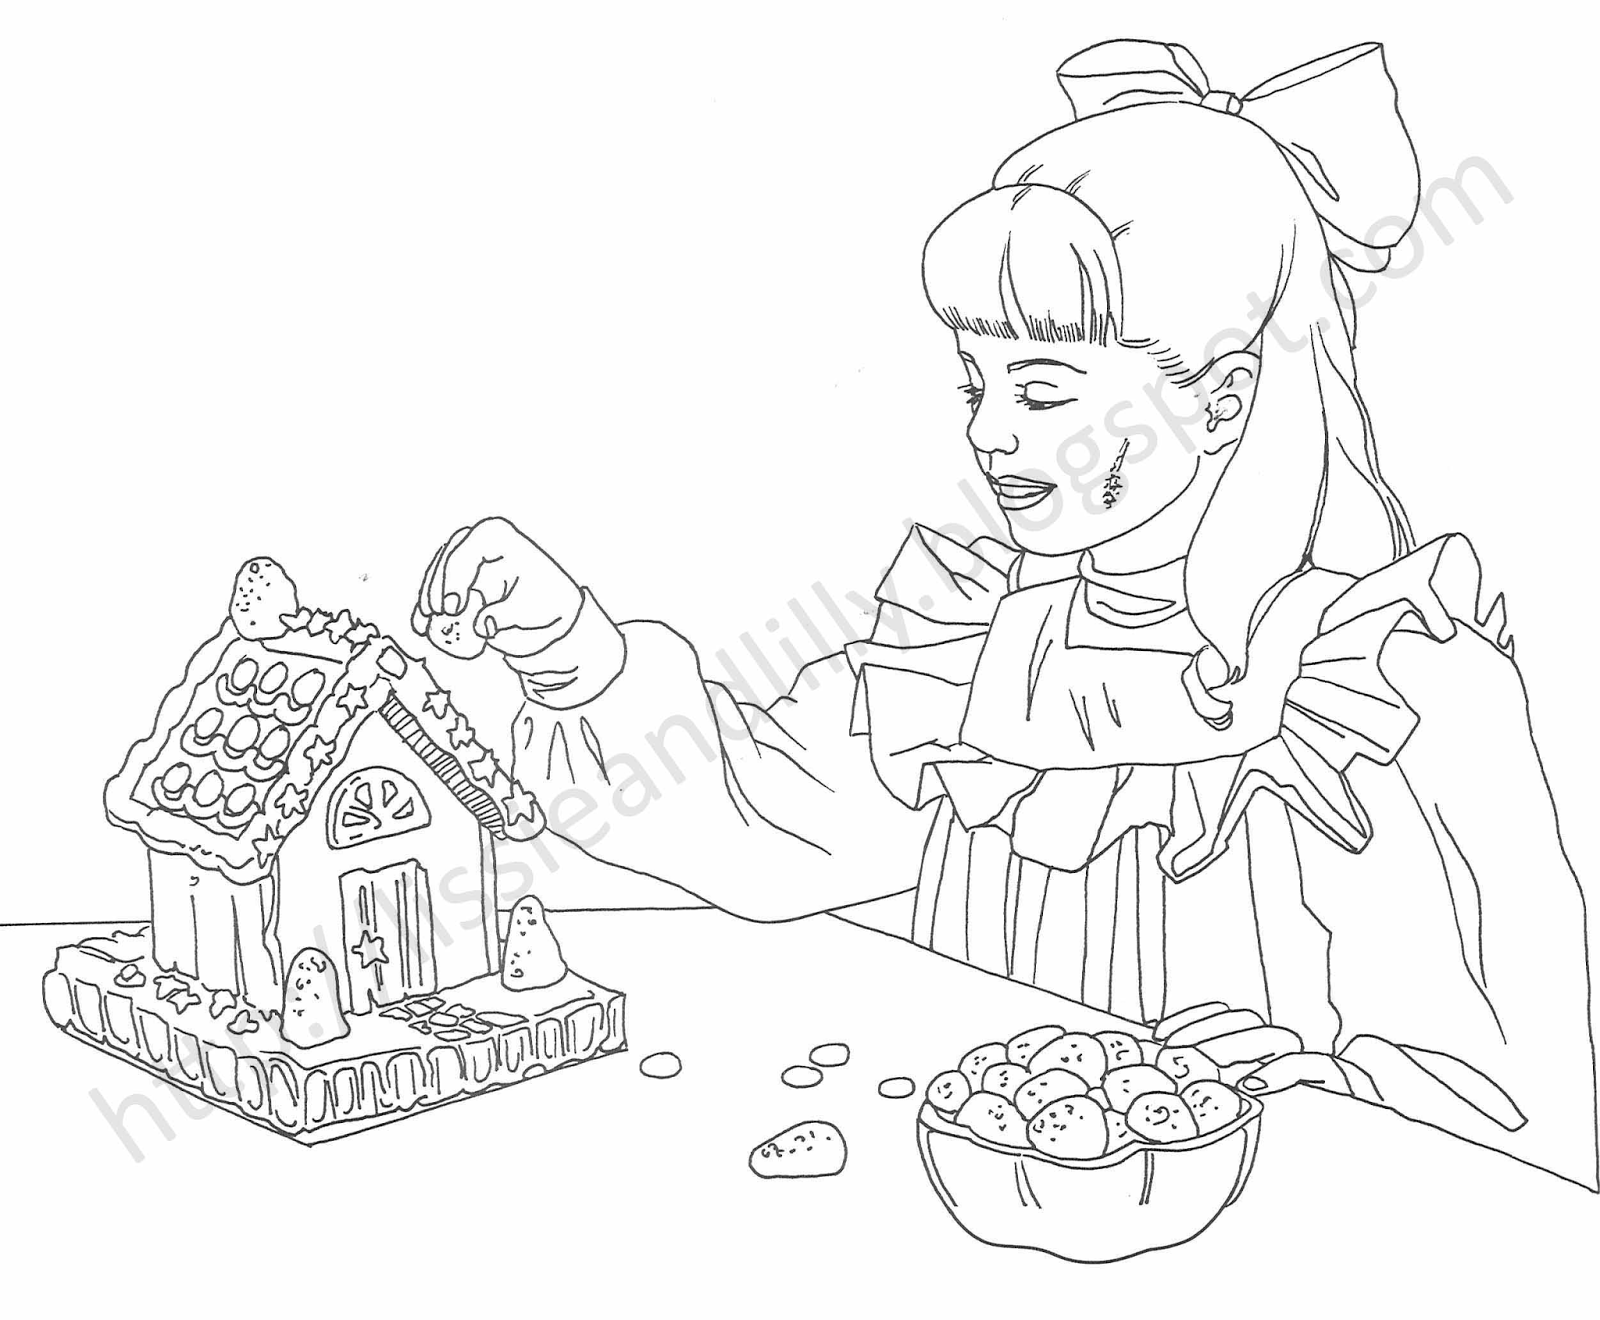 j american girl coloring pages | Lissie & Lilly: Coloring Pages